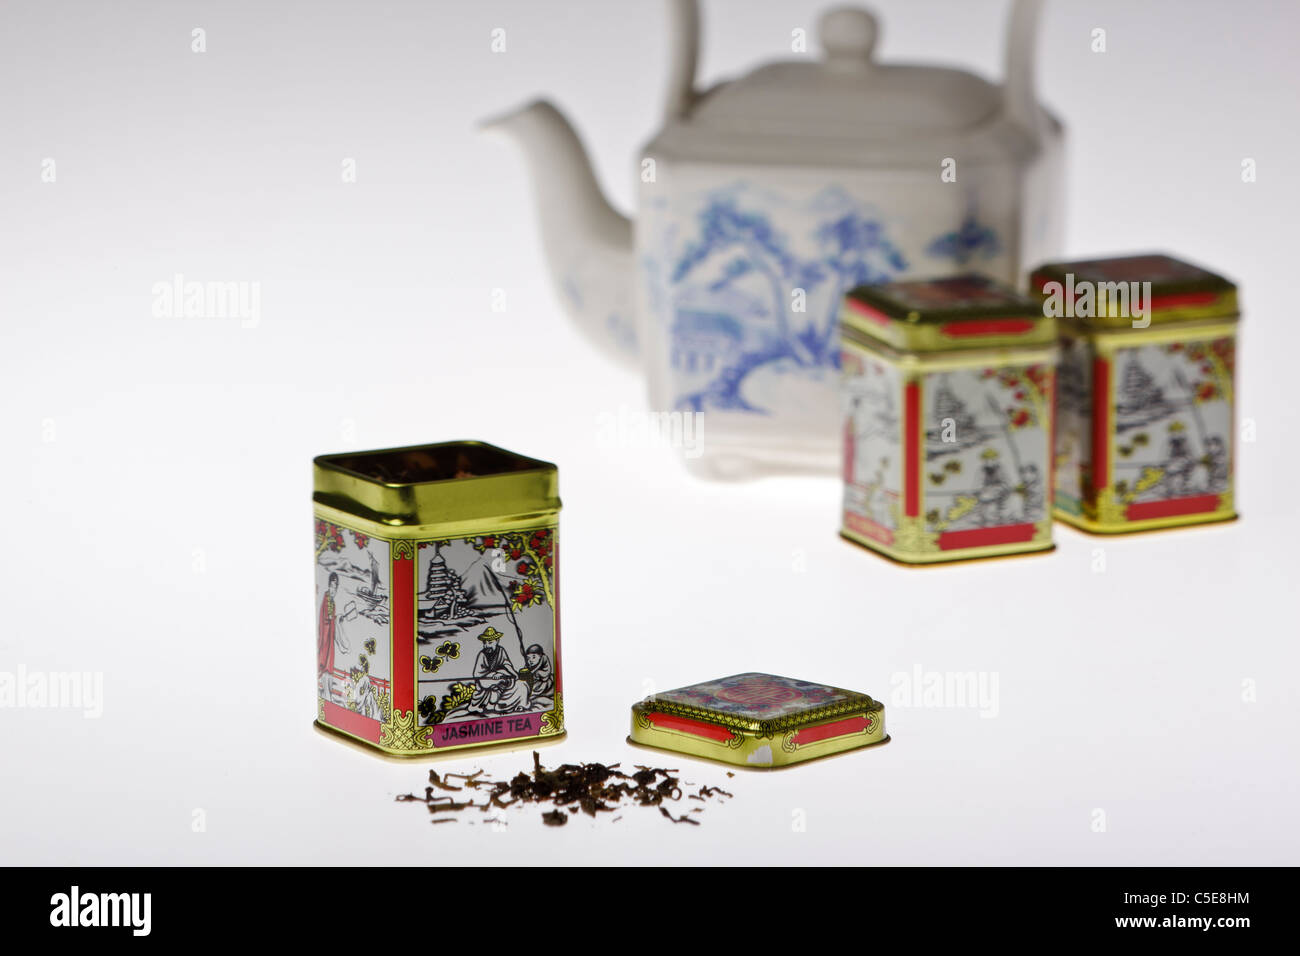 Tins of jasmine tea with a traditional willow pattern chines teapot against a plain white background - Stock Image